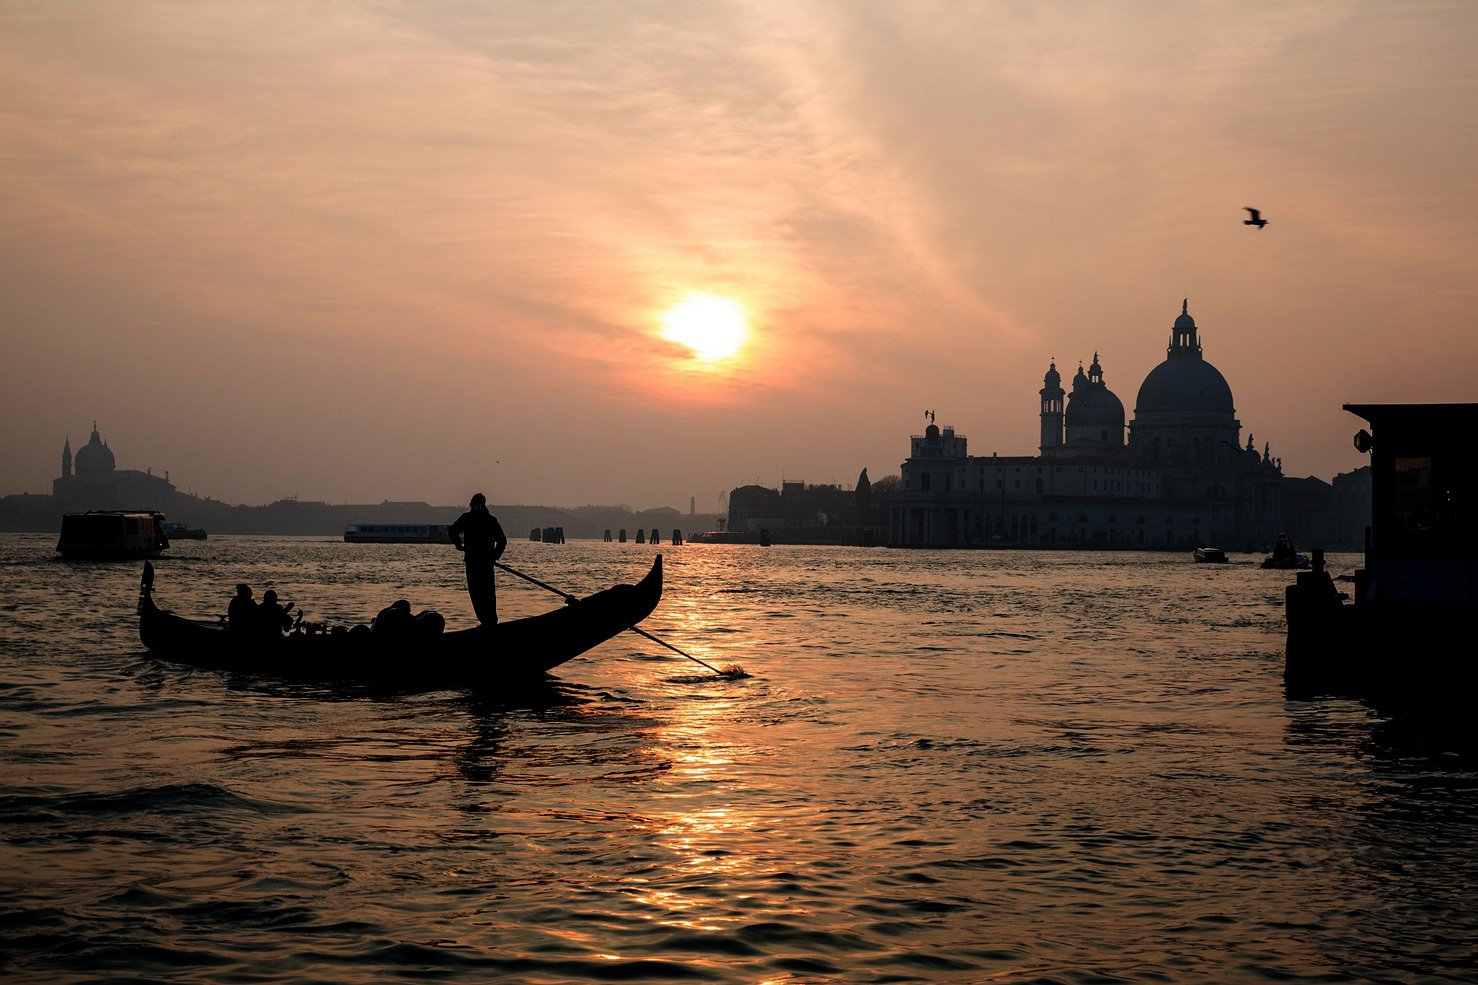 Italy tours brings you to Venice